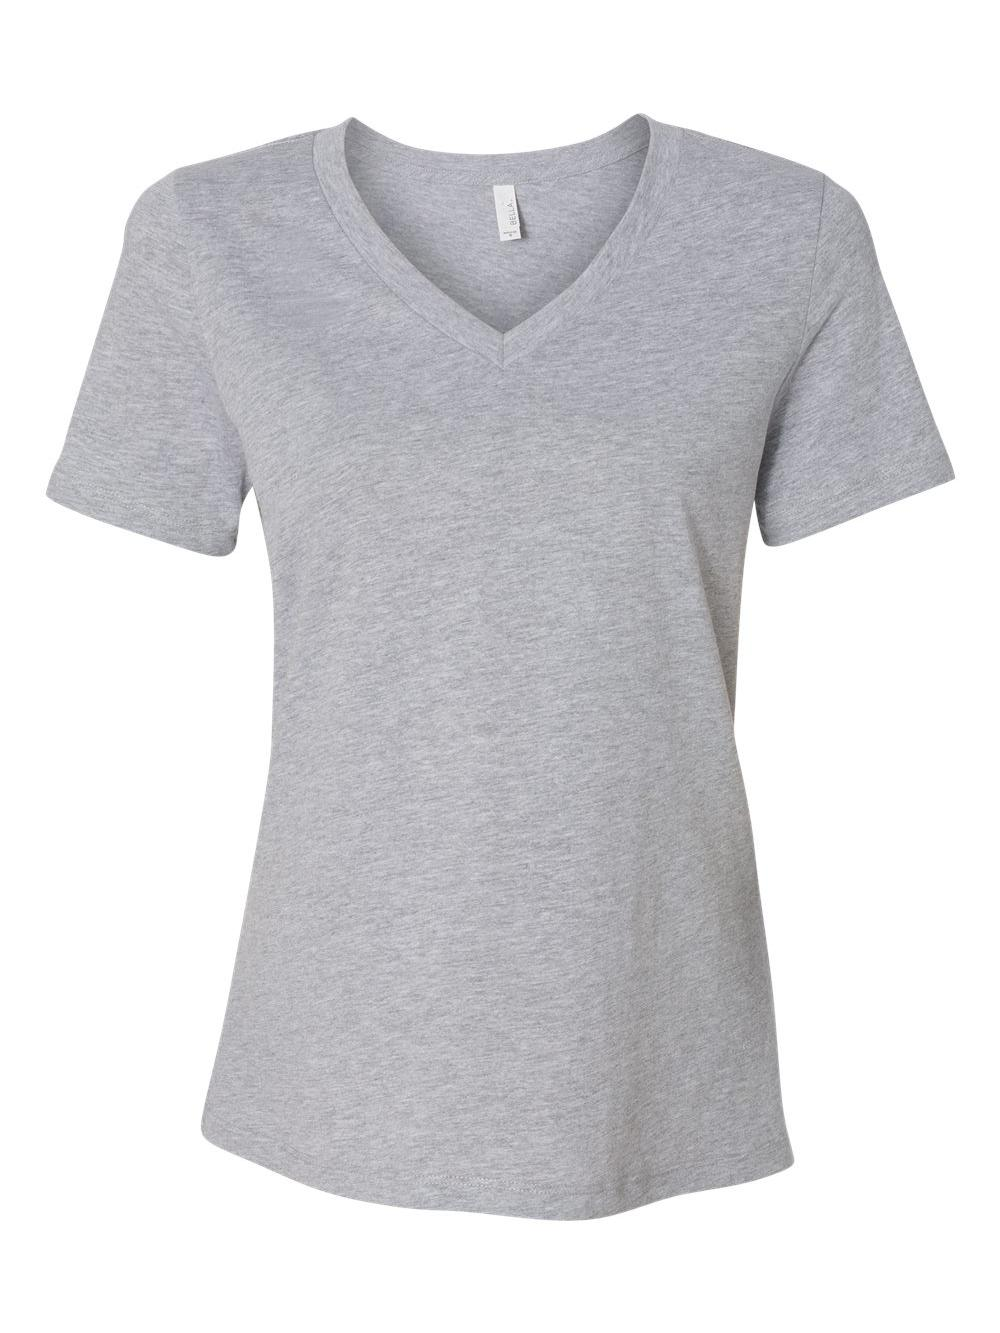 Bella-Canvas-Women-039-s-Relaxed-Short-Sleeve-Jersey-V-Neck-Tee-6405 thumbnail 3